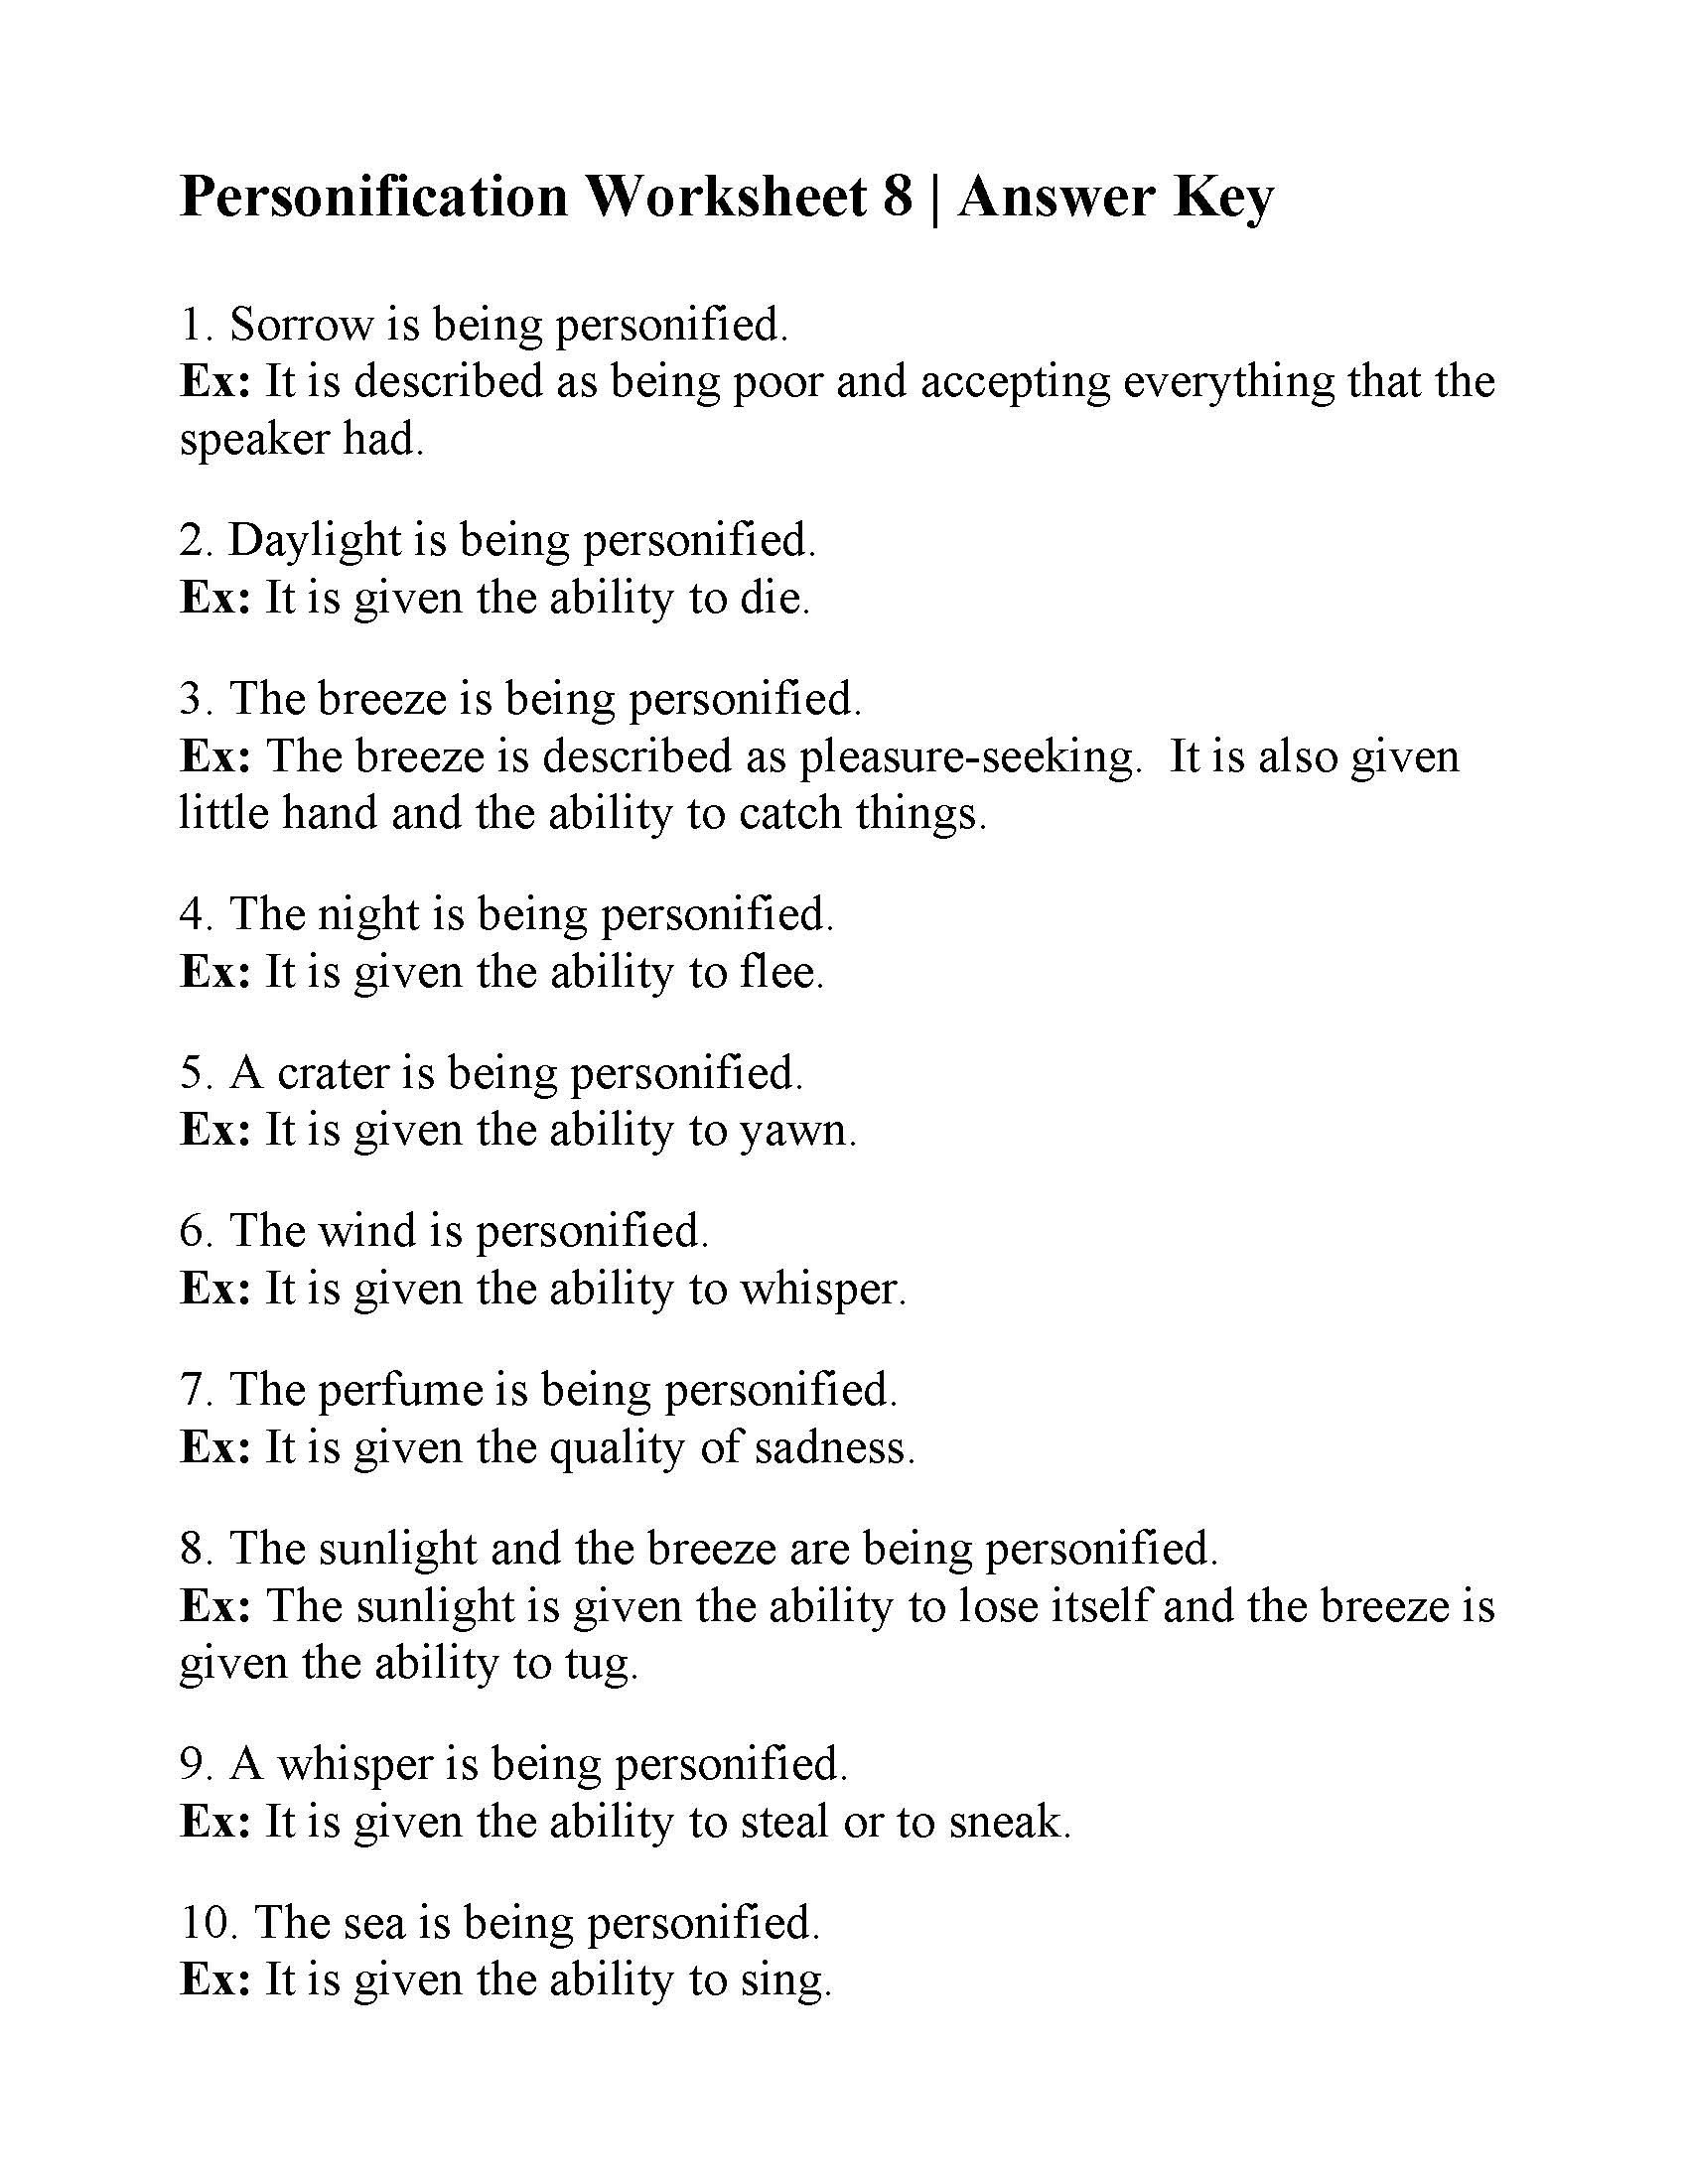 Personification Worksheets Answers Personification Worksheet 8